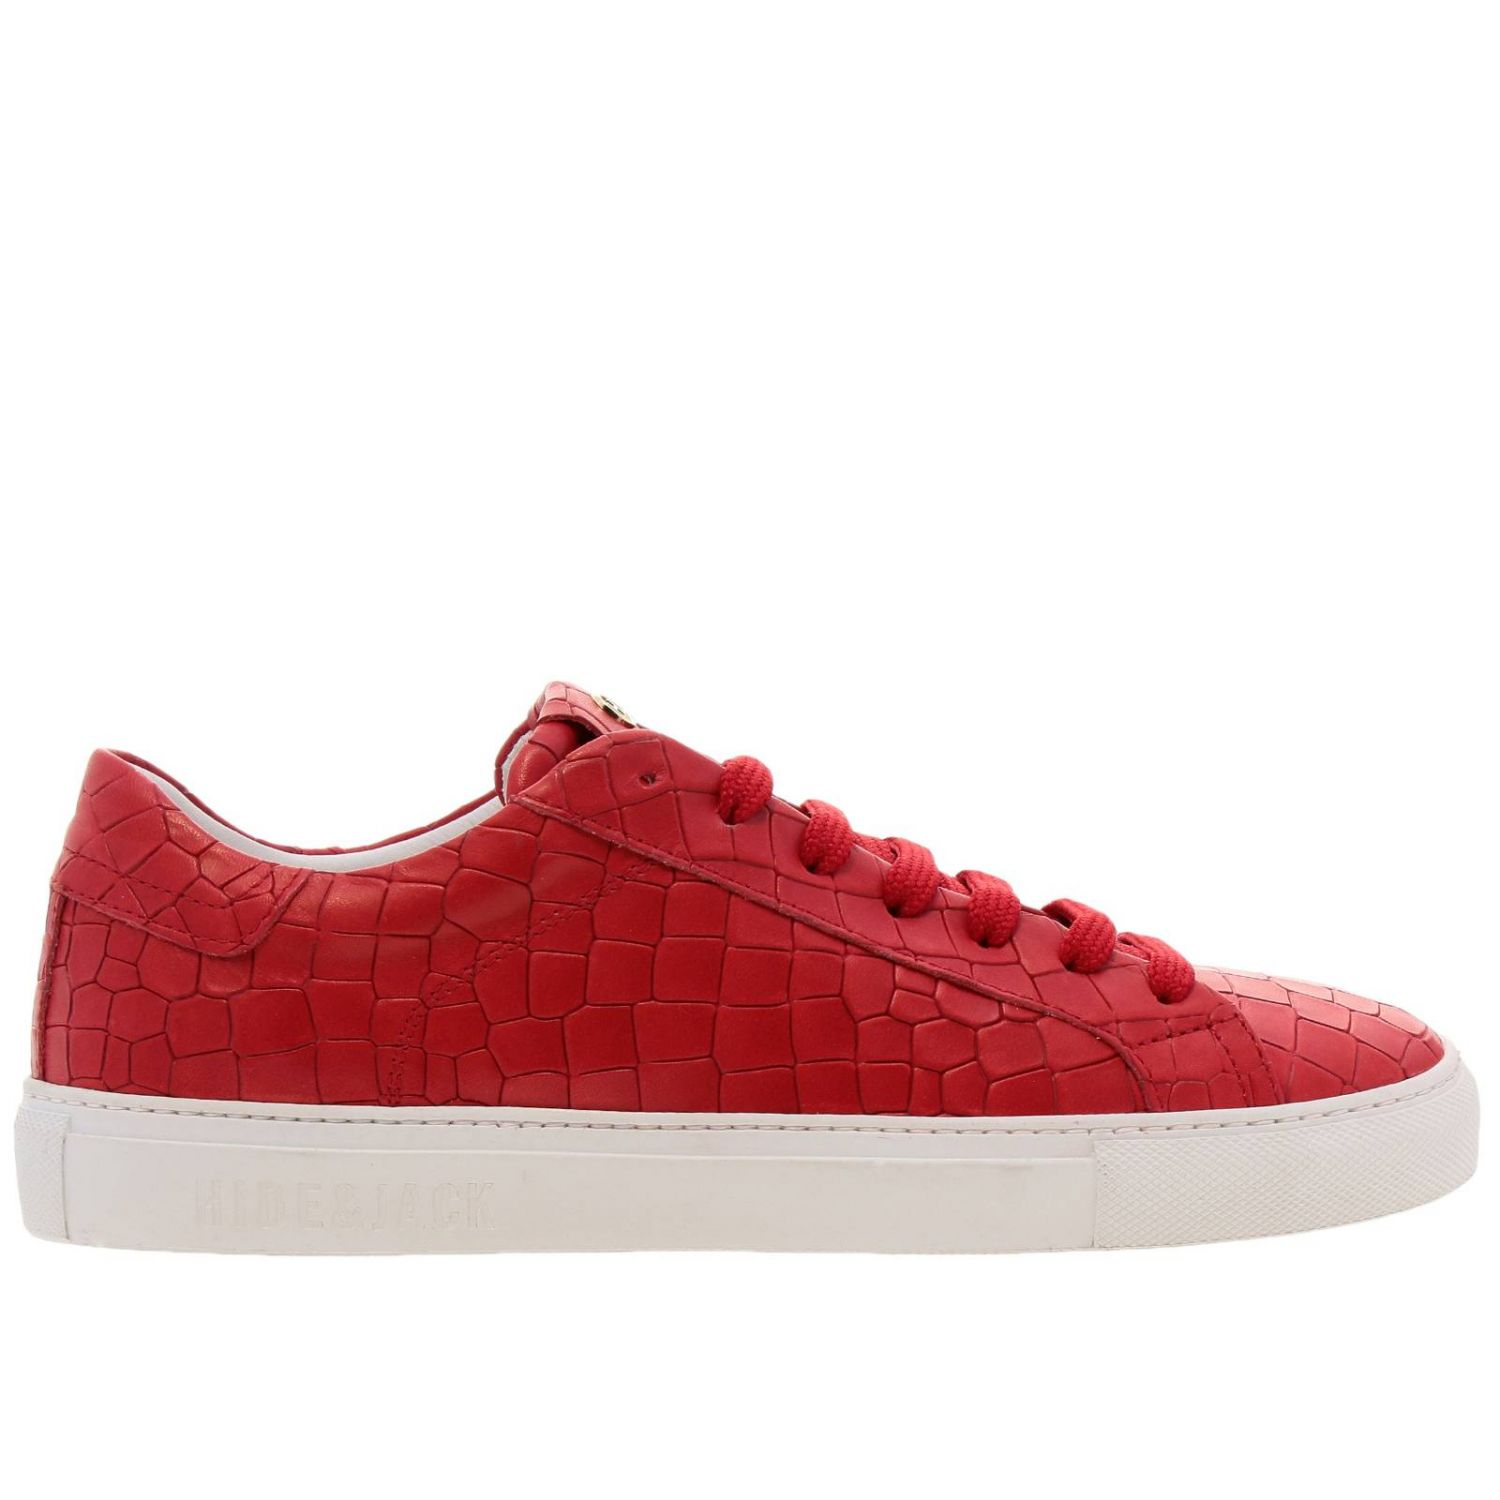 Chaussures homme Hide & Jack rouge 1